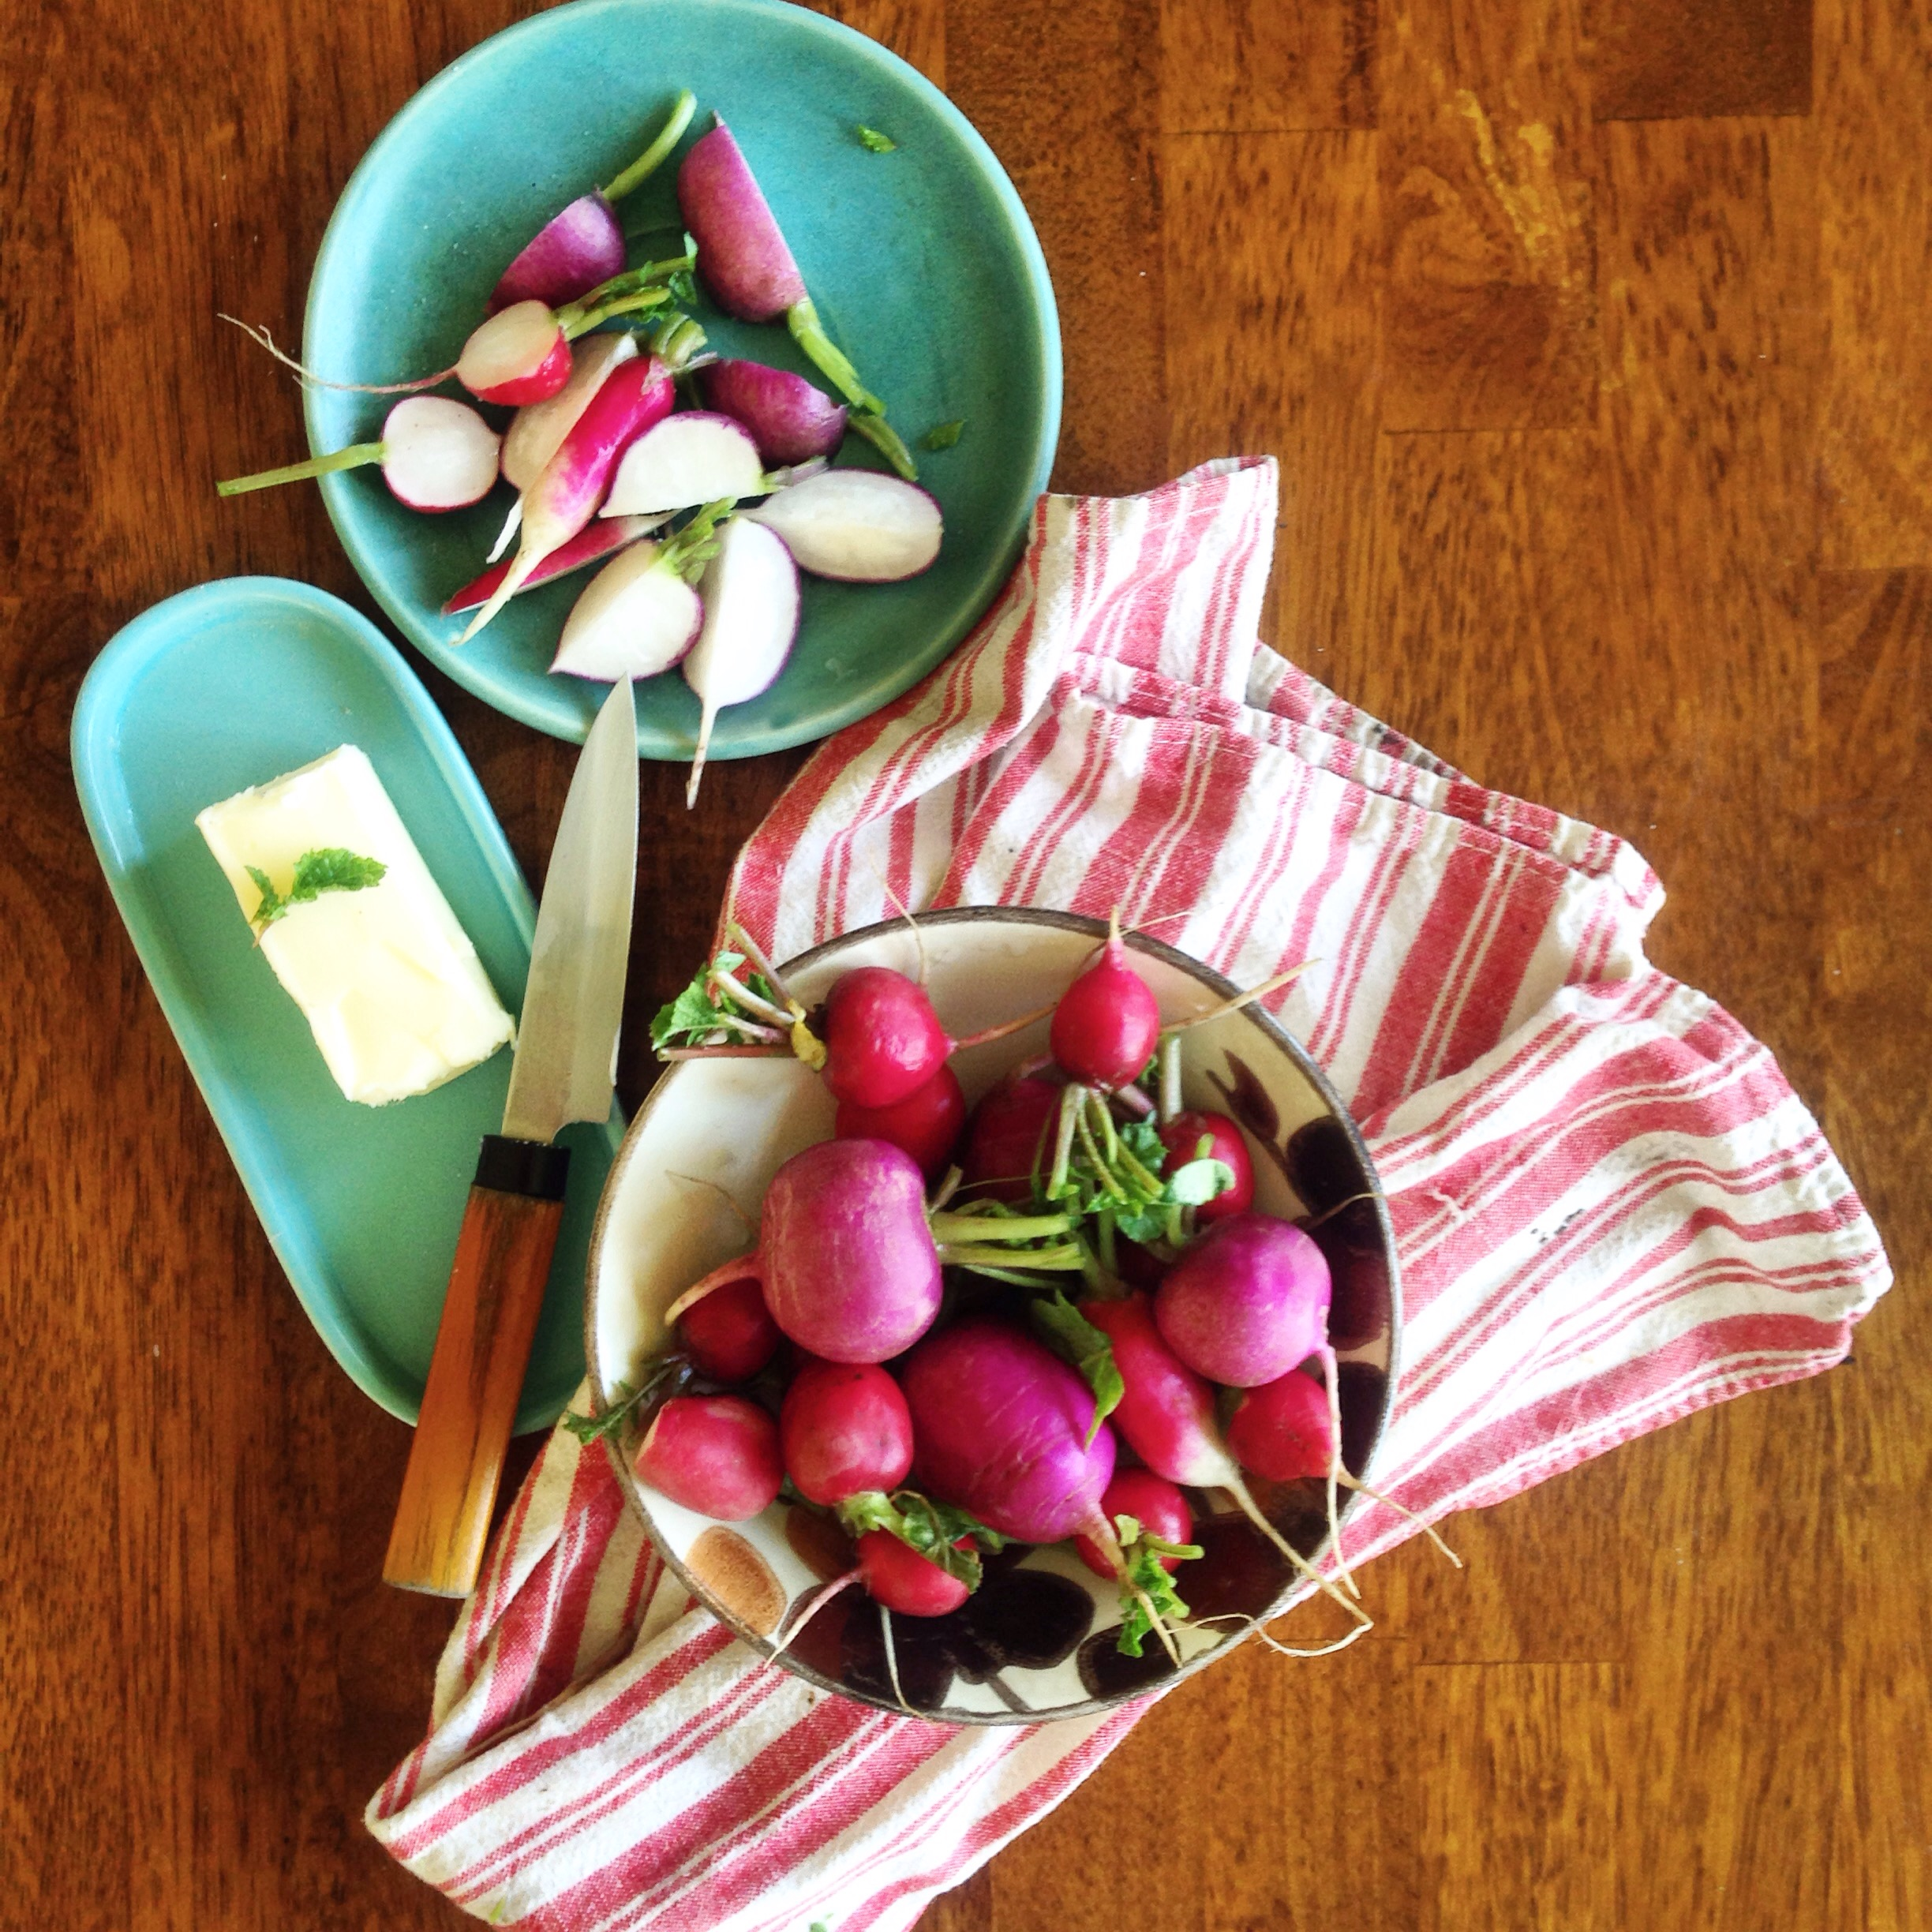 Radishes with Butter